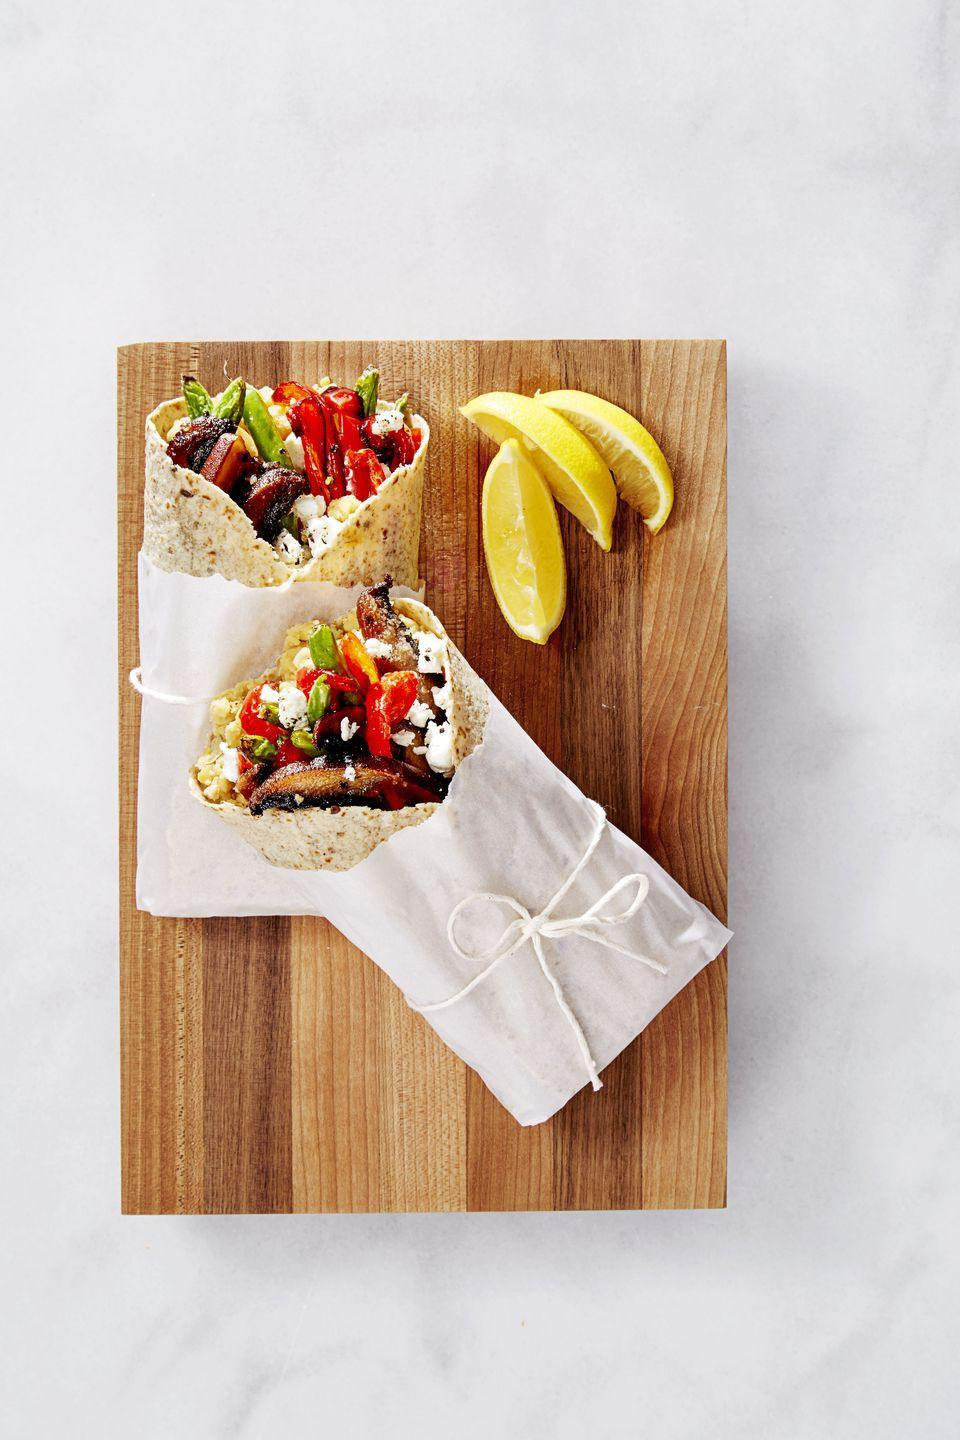 """<p>With its roasted portobellos, red peppers, green beans, and mashed chickpeas, these loaded wraps will satisfy carnivores and vegetarians alike.</p><p><em><a href=""""https://www.goodhousekeeping.com/food-recipes/easy/a36678/veggie-wraps-with-goat-cheese/"""" rel=""""nofollow noopener"""" target=""""_blank"""" data-ylk=""""slk:Get the recipe for Veggie Wraps with Goat Cheese »"""" class=""""link rapid-noclick-resp"""">Get the recipe for Veggie Wraps with Goat Cheese »</a></em></p><p><strong>RELATED: </strong><a href=""""https://www.goodhousekeeping.com/food-recipes/healthy/g2319/vegetarian-tofu-recipes/"""" rel=""""nofollow noopener"""" target=""""_blank"""" data-ylk=""""slk:38 Easy Tofu Recipes Both Vegetarians and Meat Lovers Can Get Behind"""" class=""""link rapid-noclick-resp"""">38 Easy Tofu Recipes Both Vegetarians and Meat Lovers Can Get Behind</a></p>"""